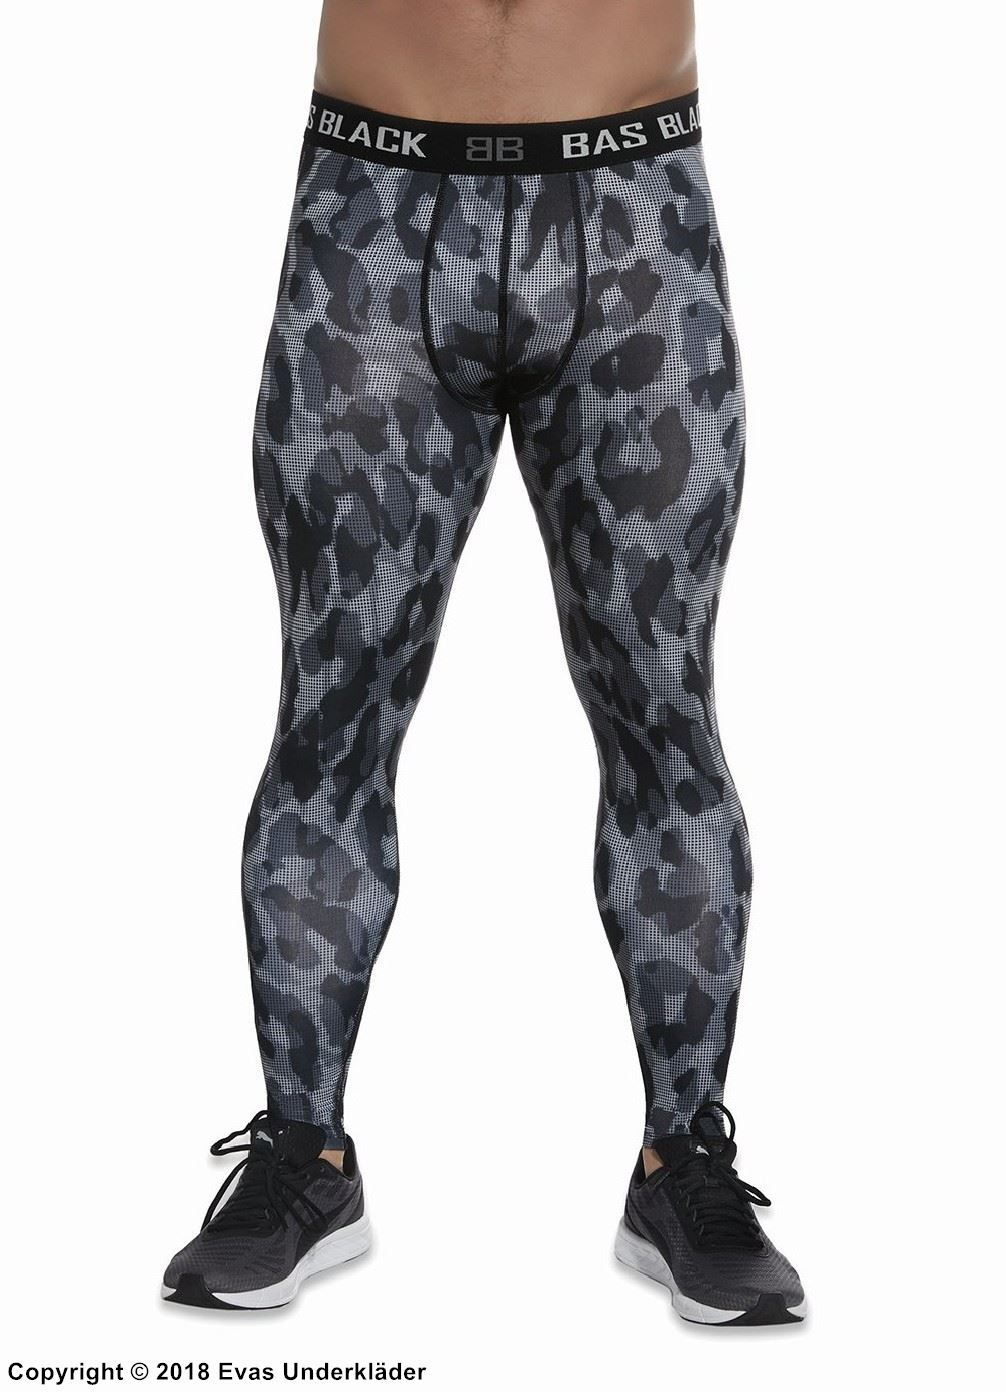 Men's training tights, camouflage